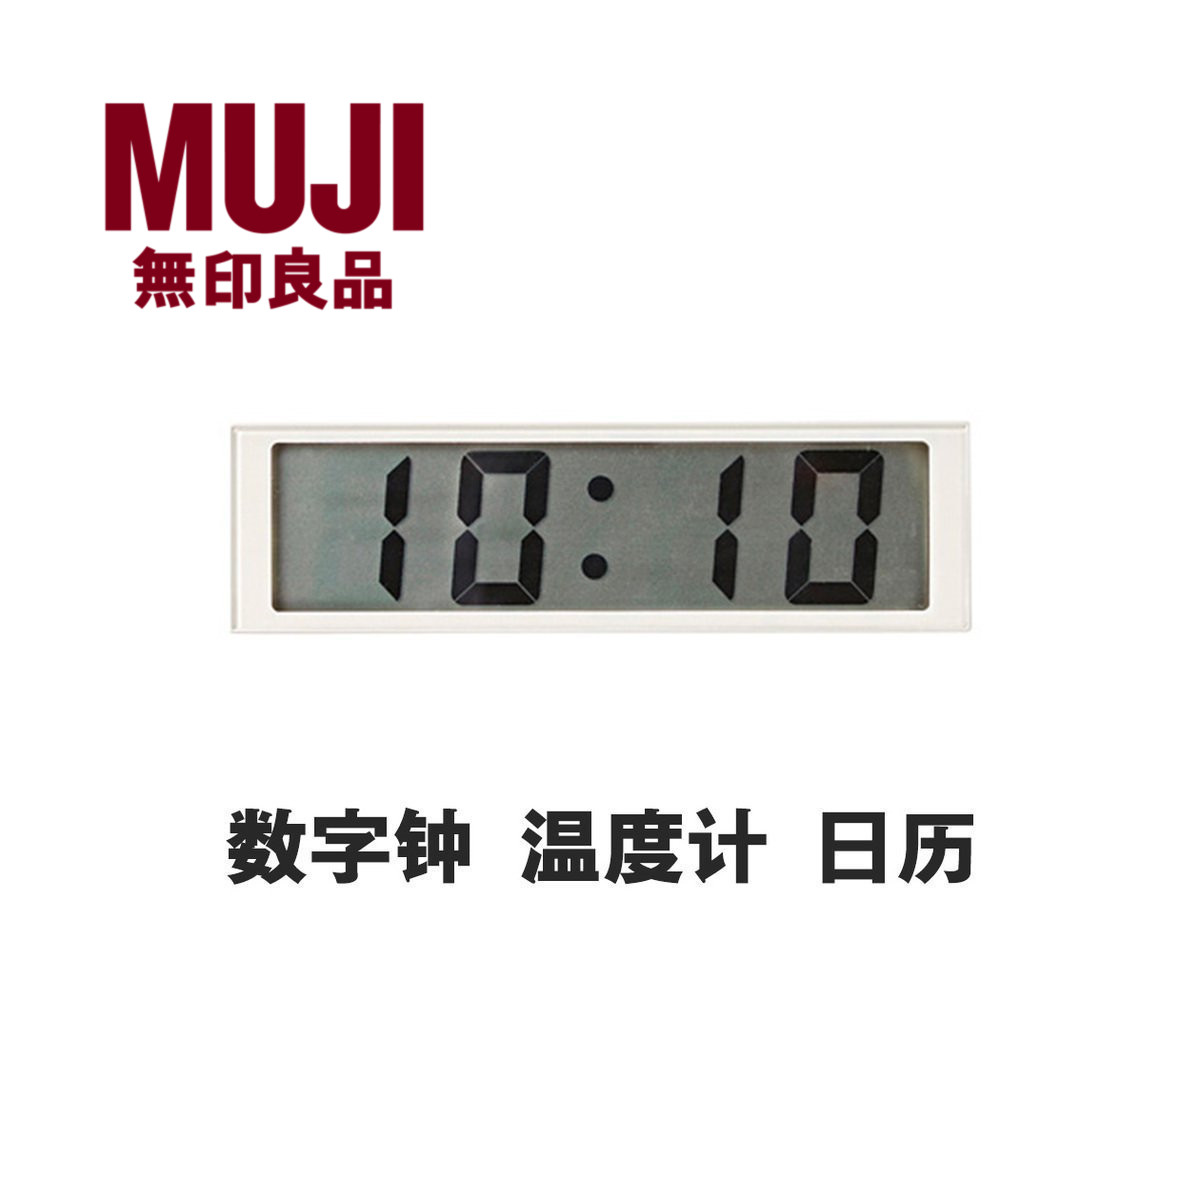 MUJI special cabinet, electronic clock wet thermometer, calendar alarm clock quartz clock in Japan